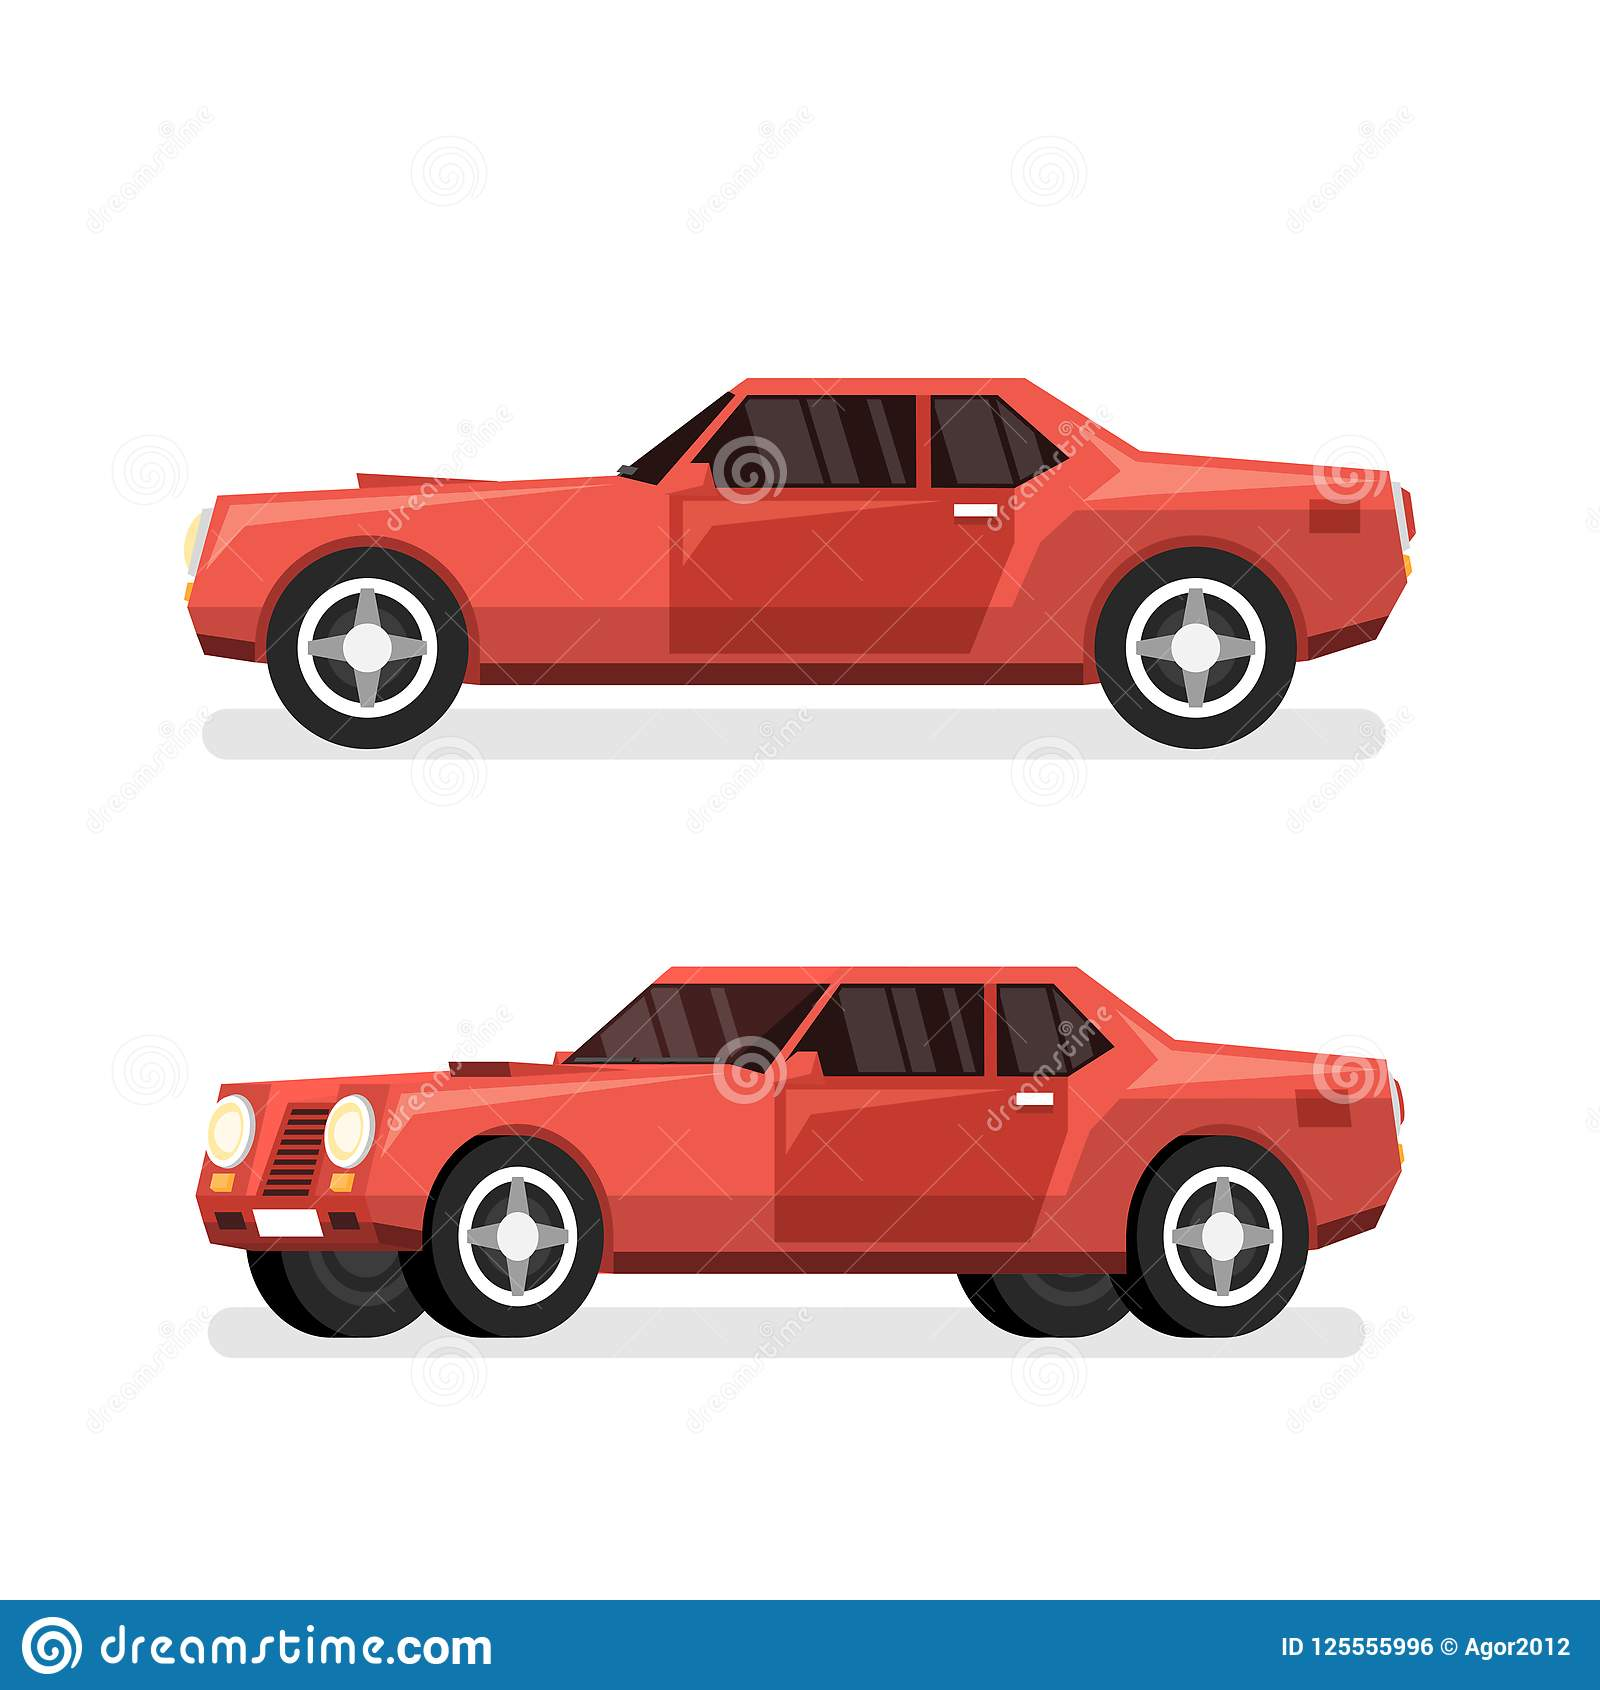 Big Red Sports >> Red Sports Powerful Car With Big Engine Stock Vector